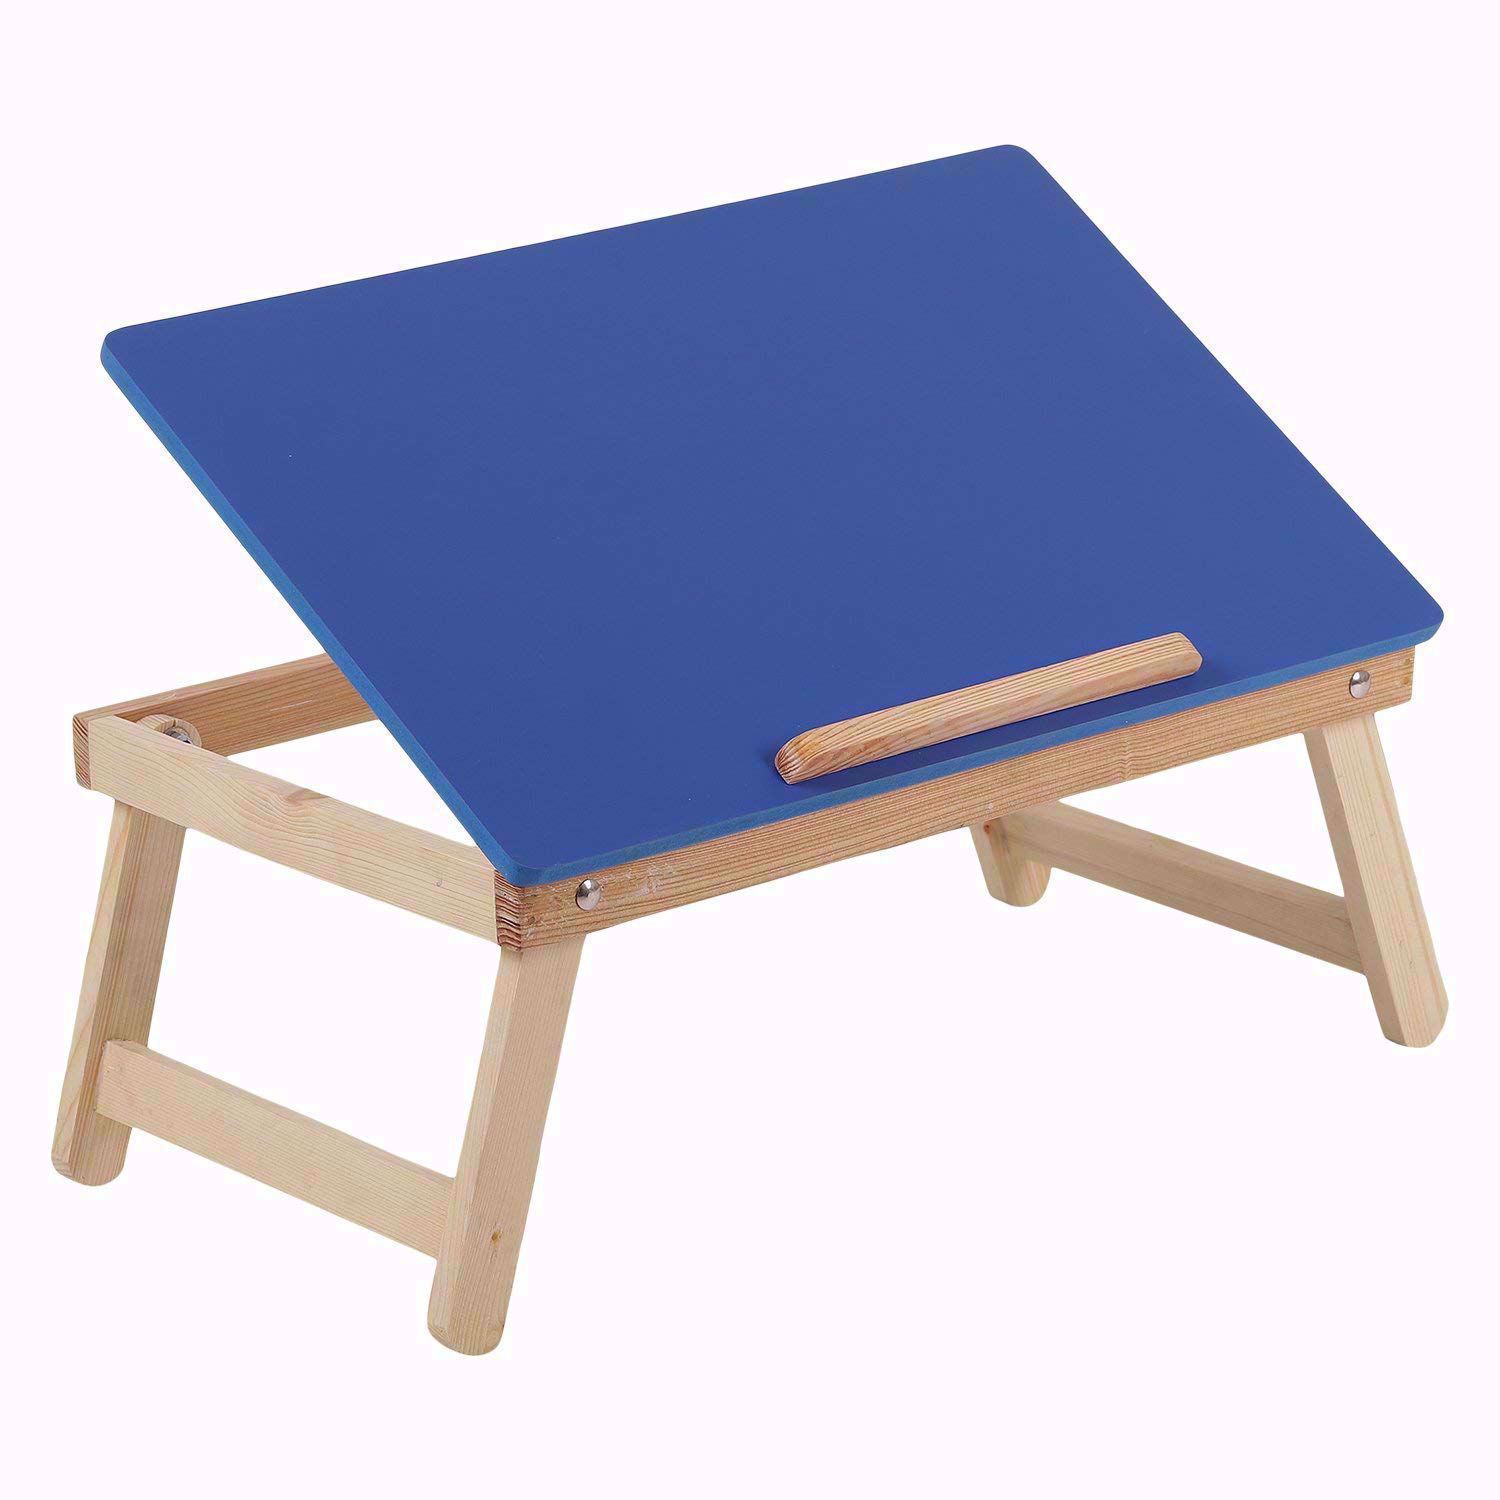 Laptop Desk Bed Student Study Meal Table -Blue